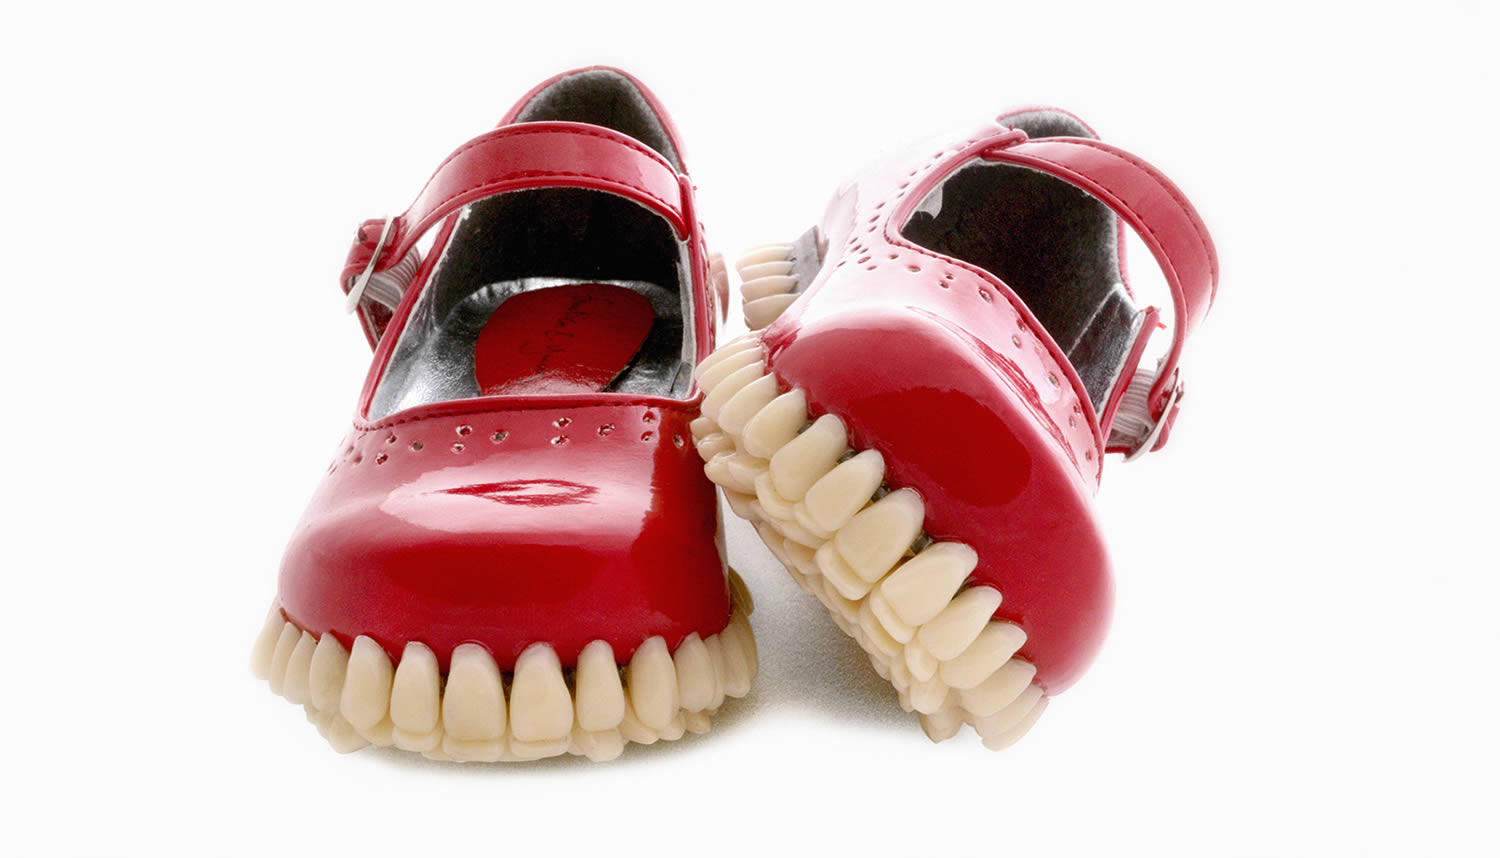 red shoes with teeth soles, FANTICH & YOUNG